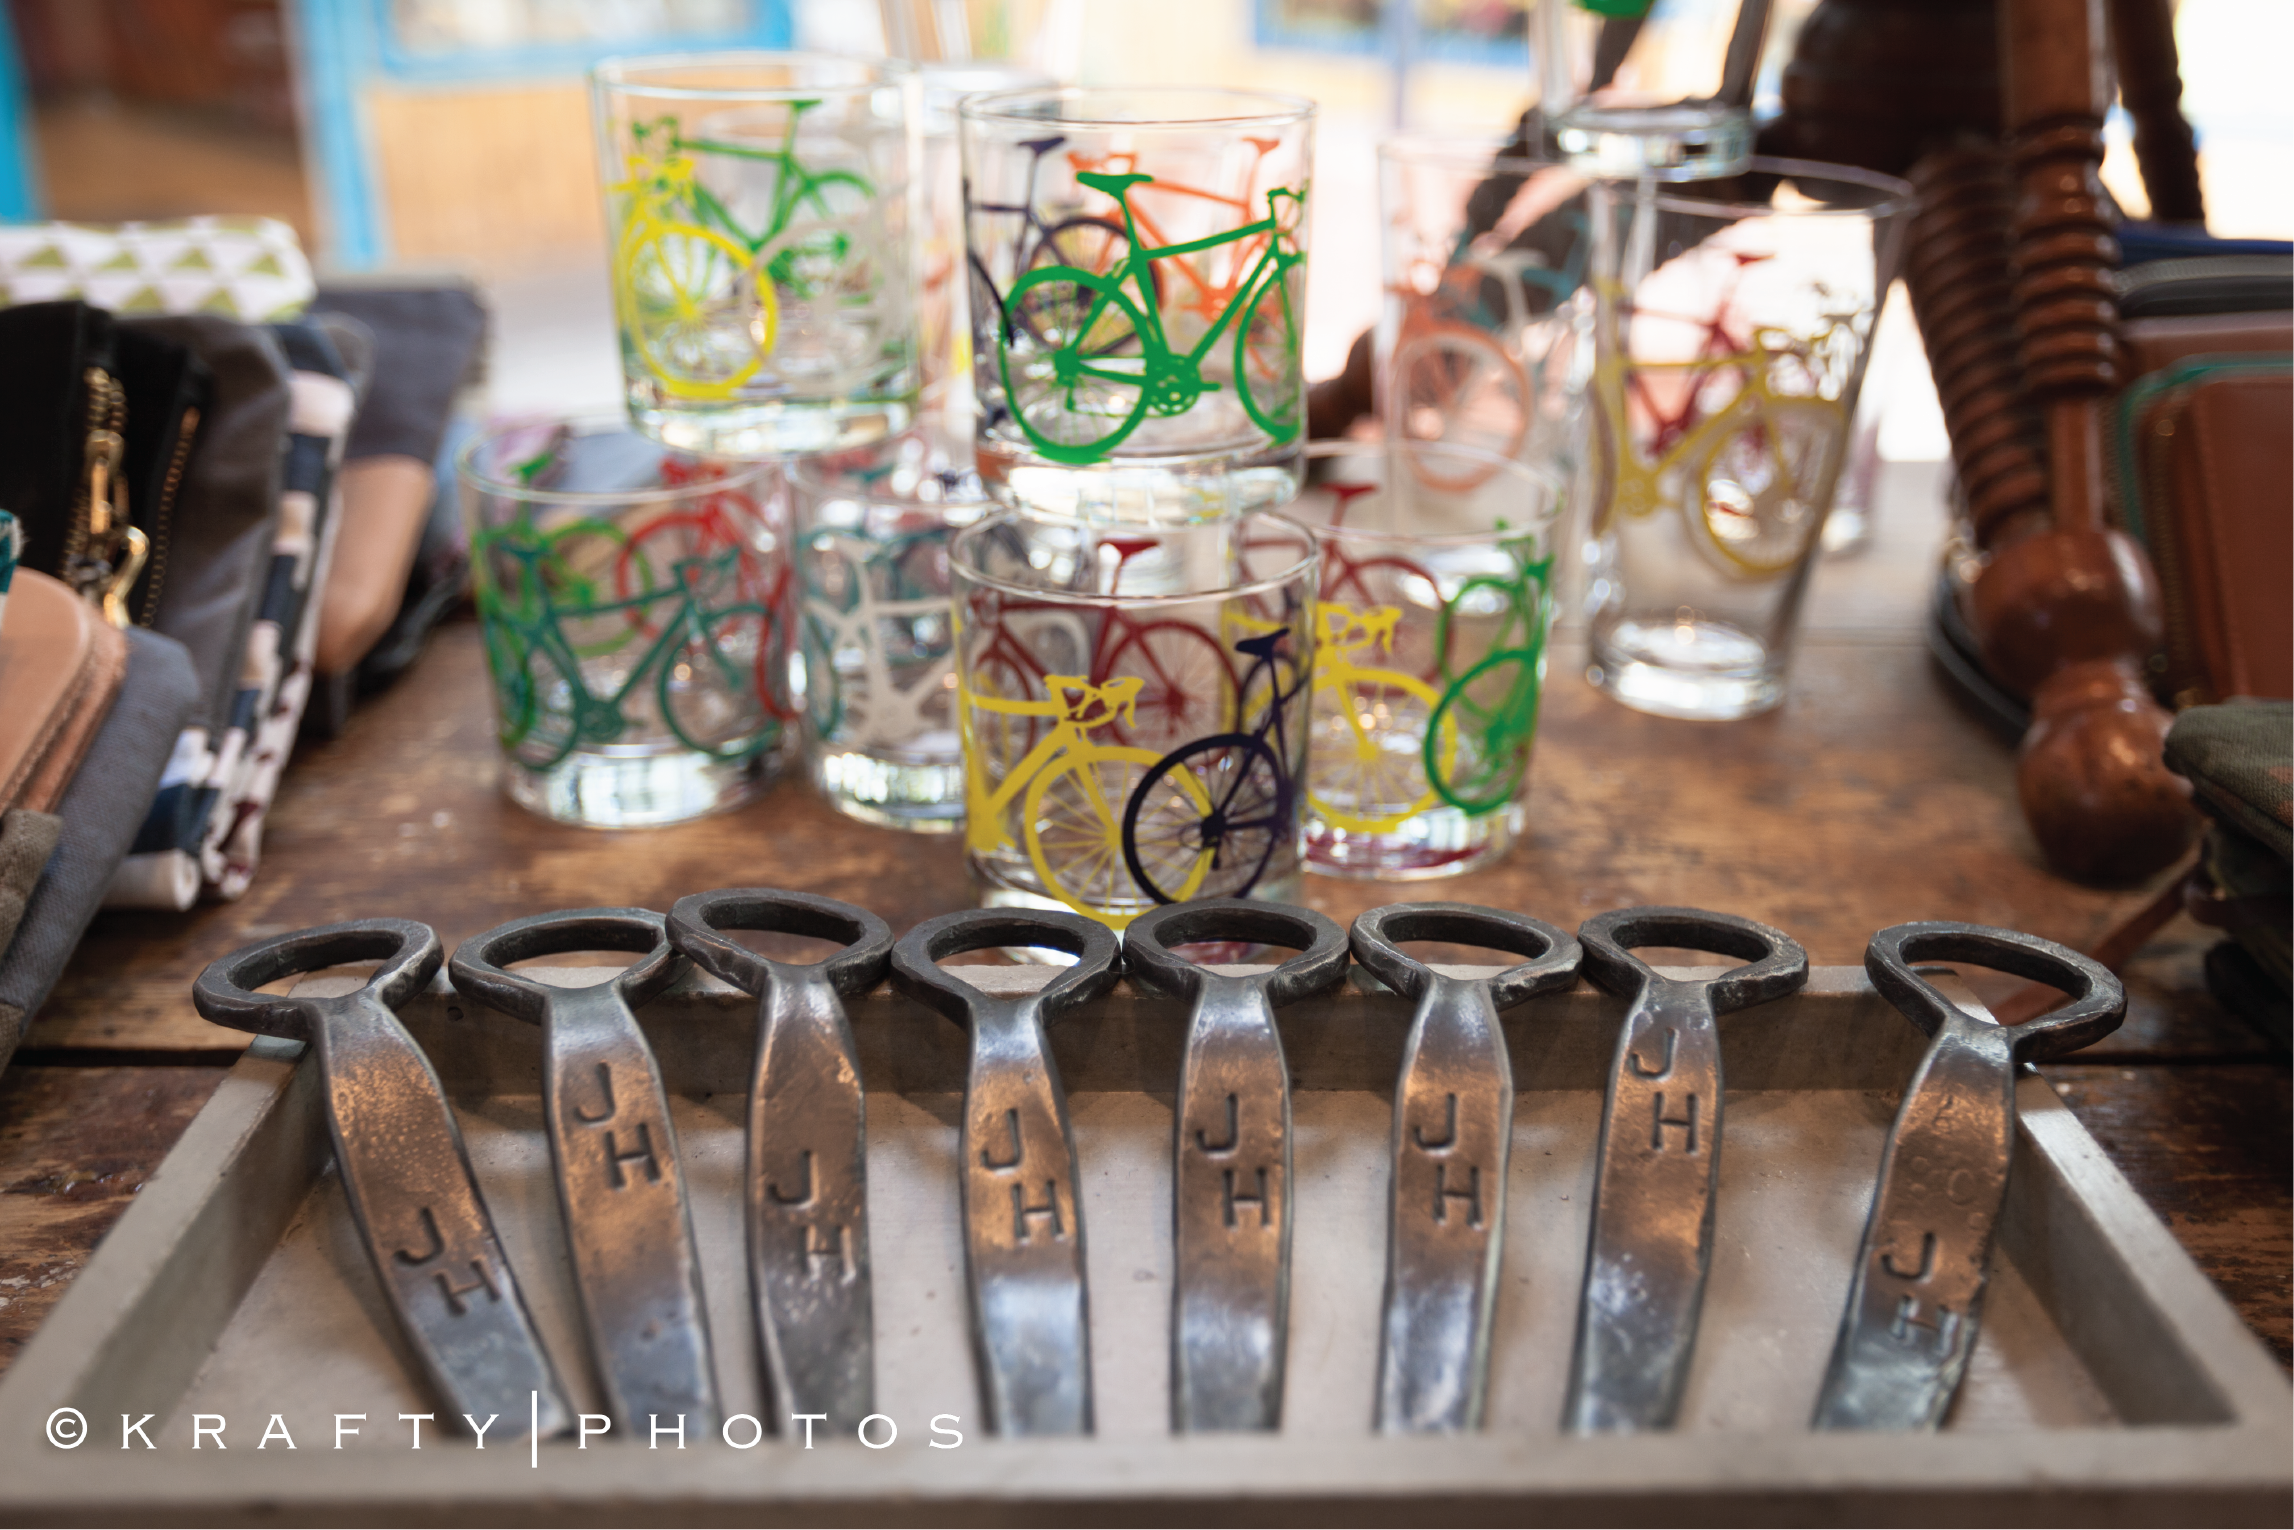 Close up of bicycle glassware and can opener on store shelf